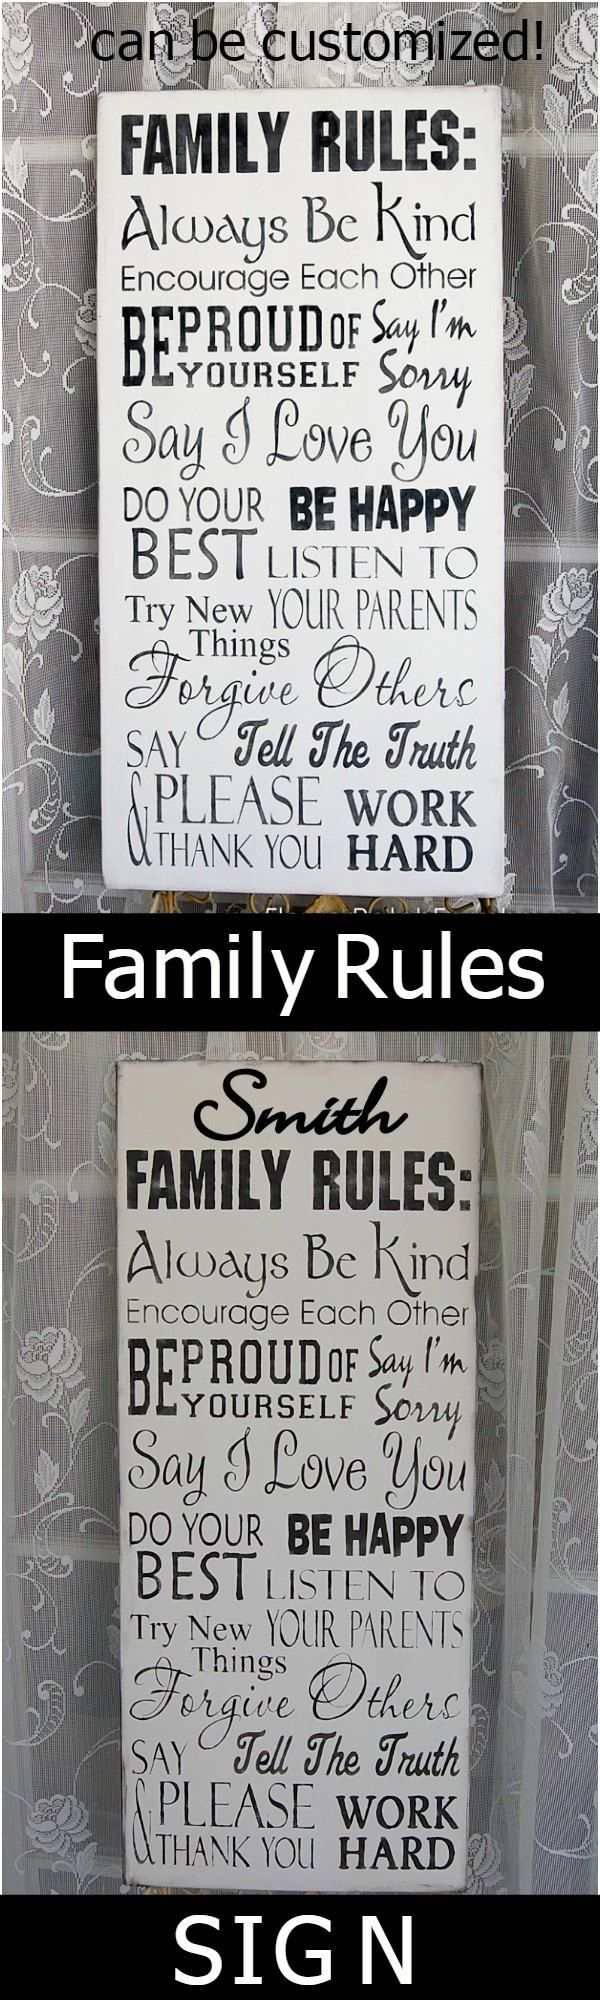 """Hand made Family Rules sign, 11.25"""" x 24"""" solid pine, can be customized with your family name. $44.75 + shipping."""